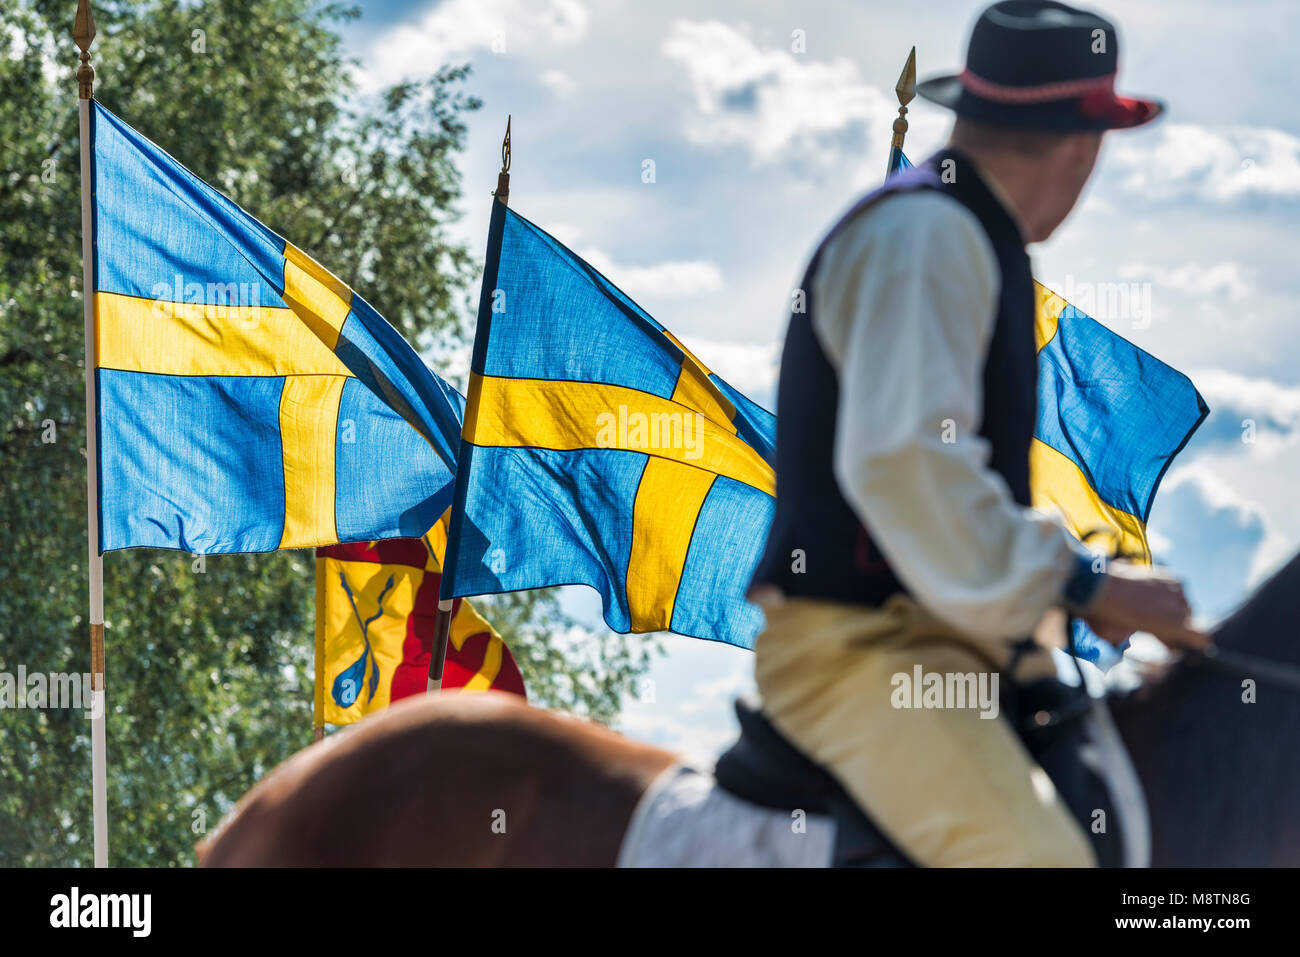 Traditional midsummer celebration in Rattvik, Dalarna,Sweden - Stock Image